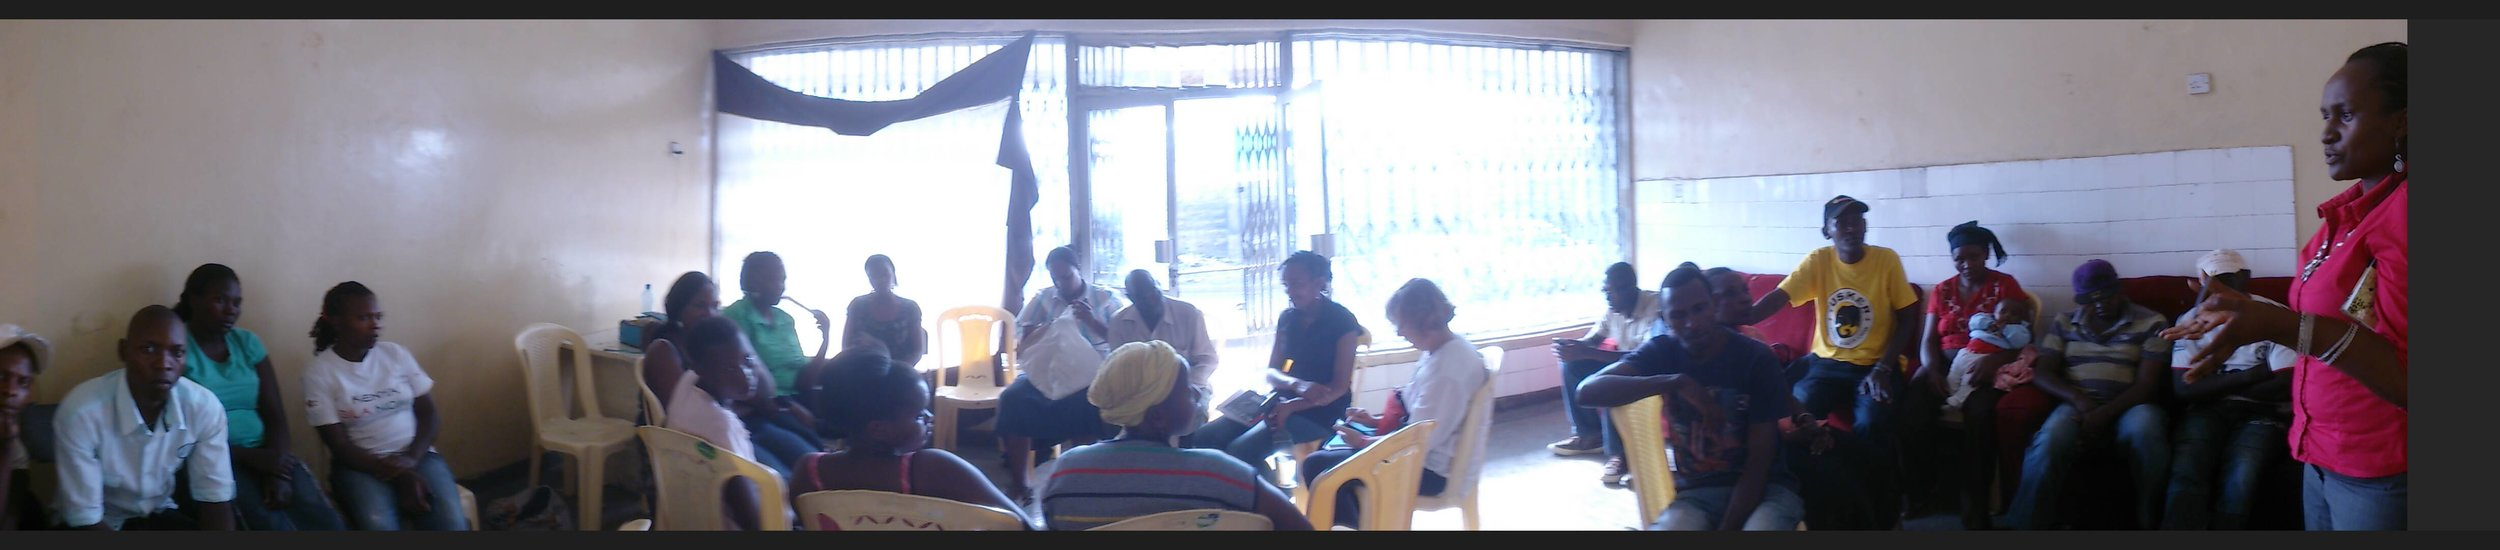 Ongoing Focussed group discussion